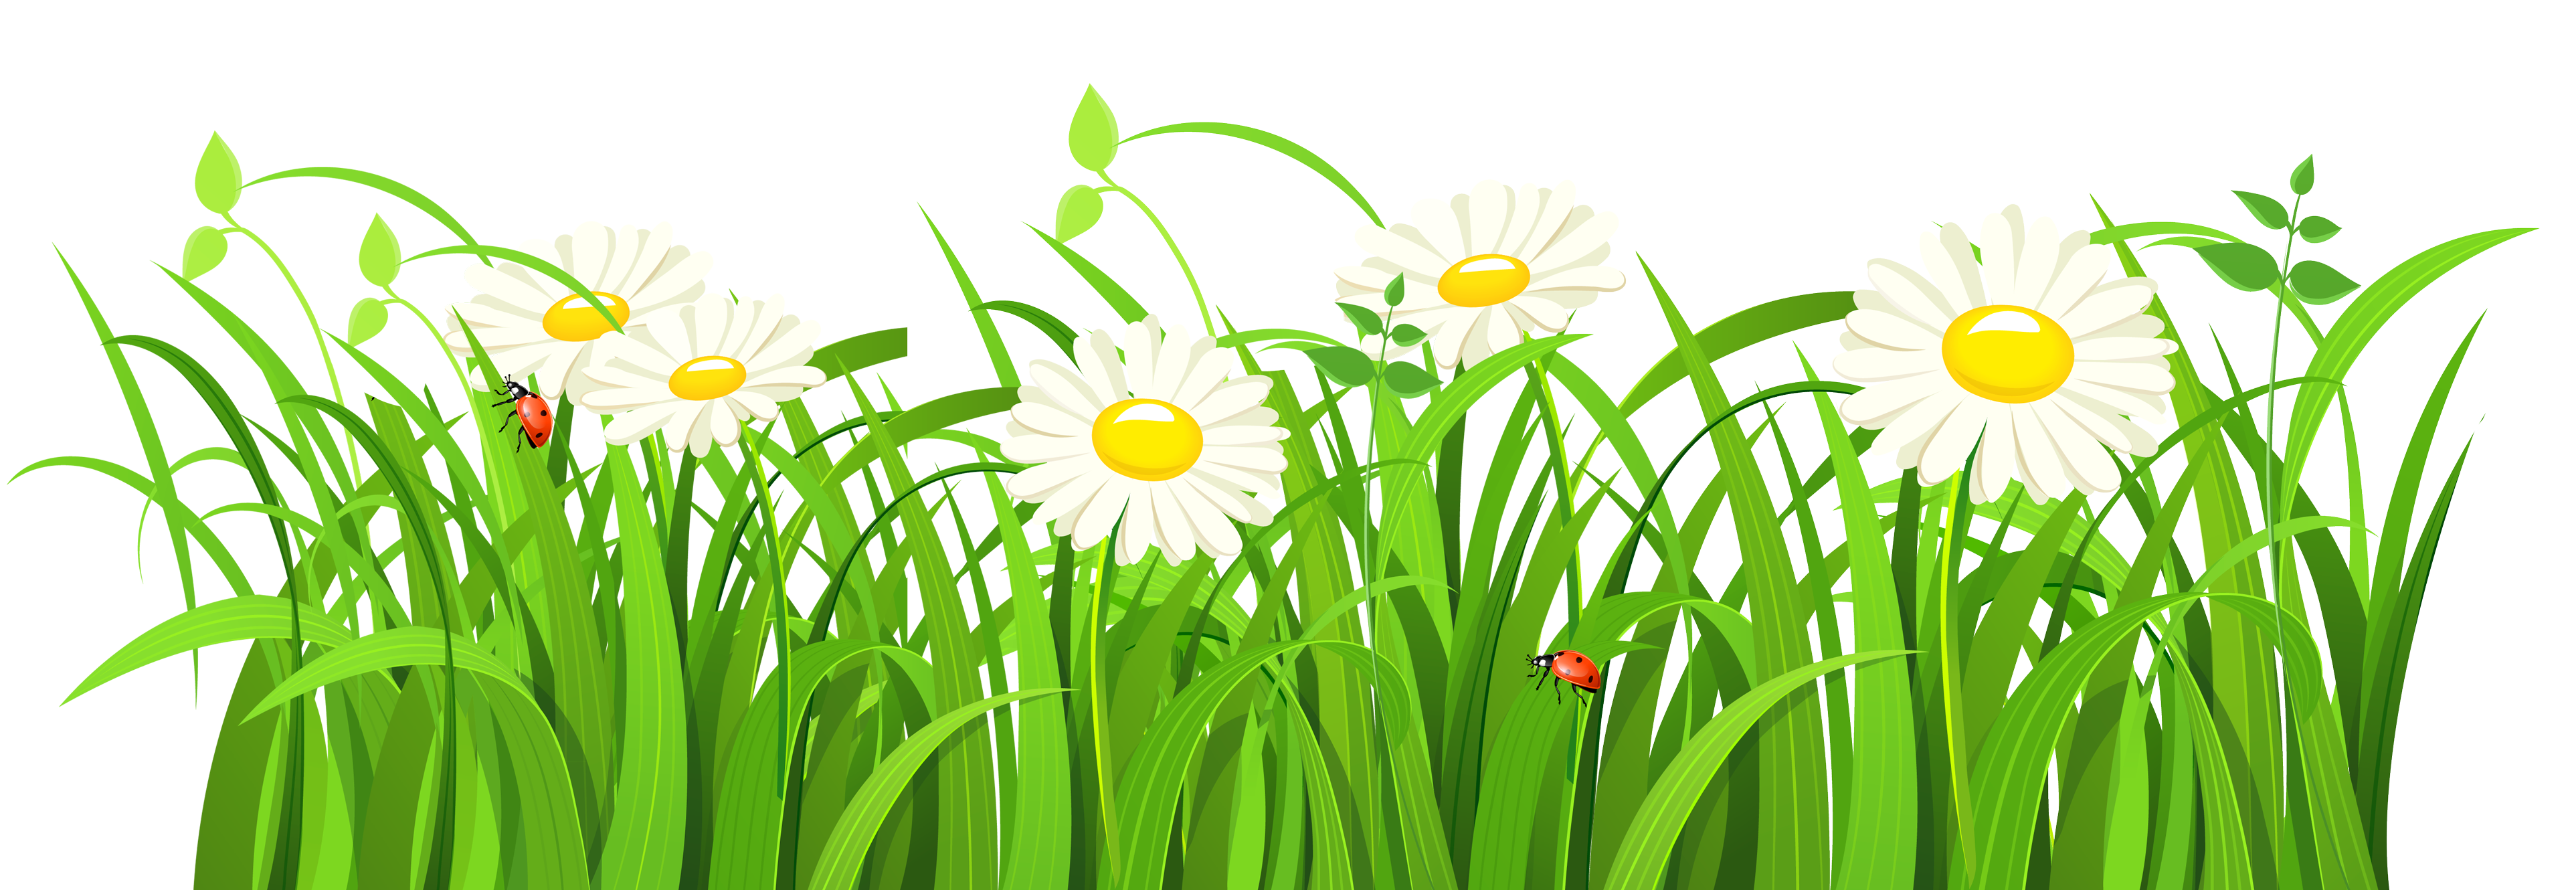 Grasses PNG HD-PlusPNG.com-3850 - Grasses PNG HD